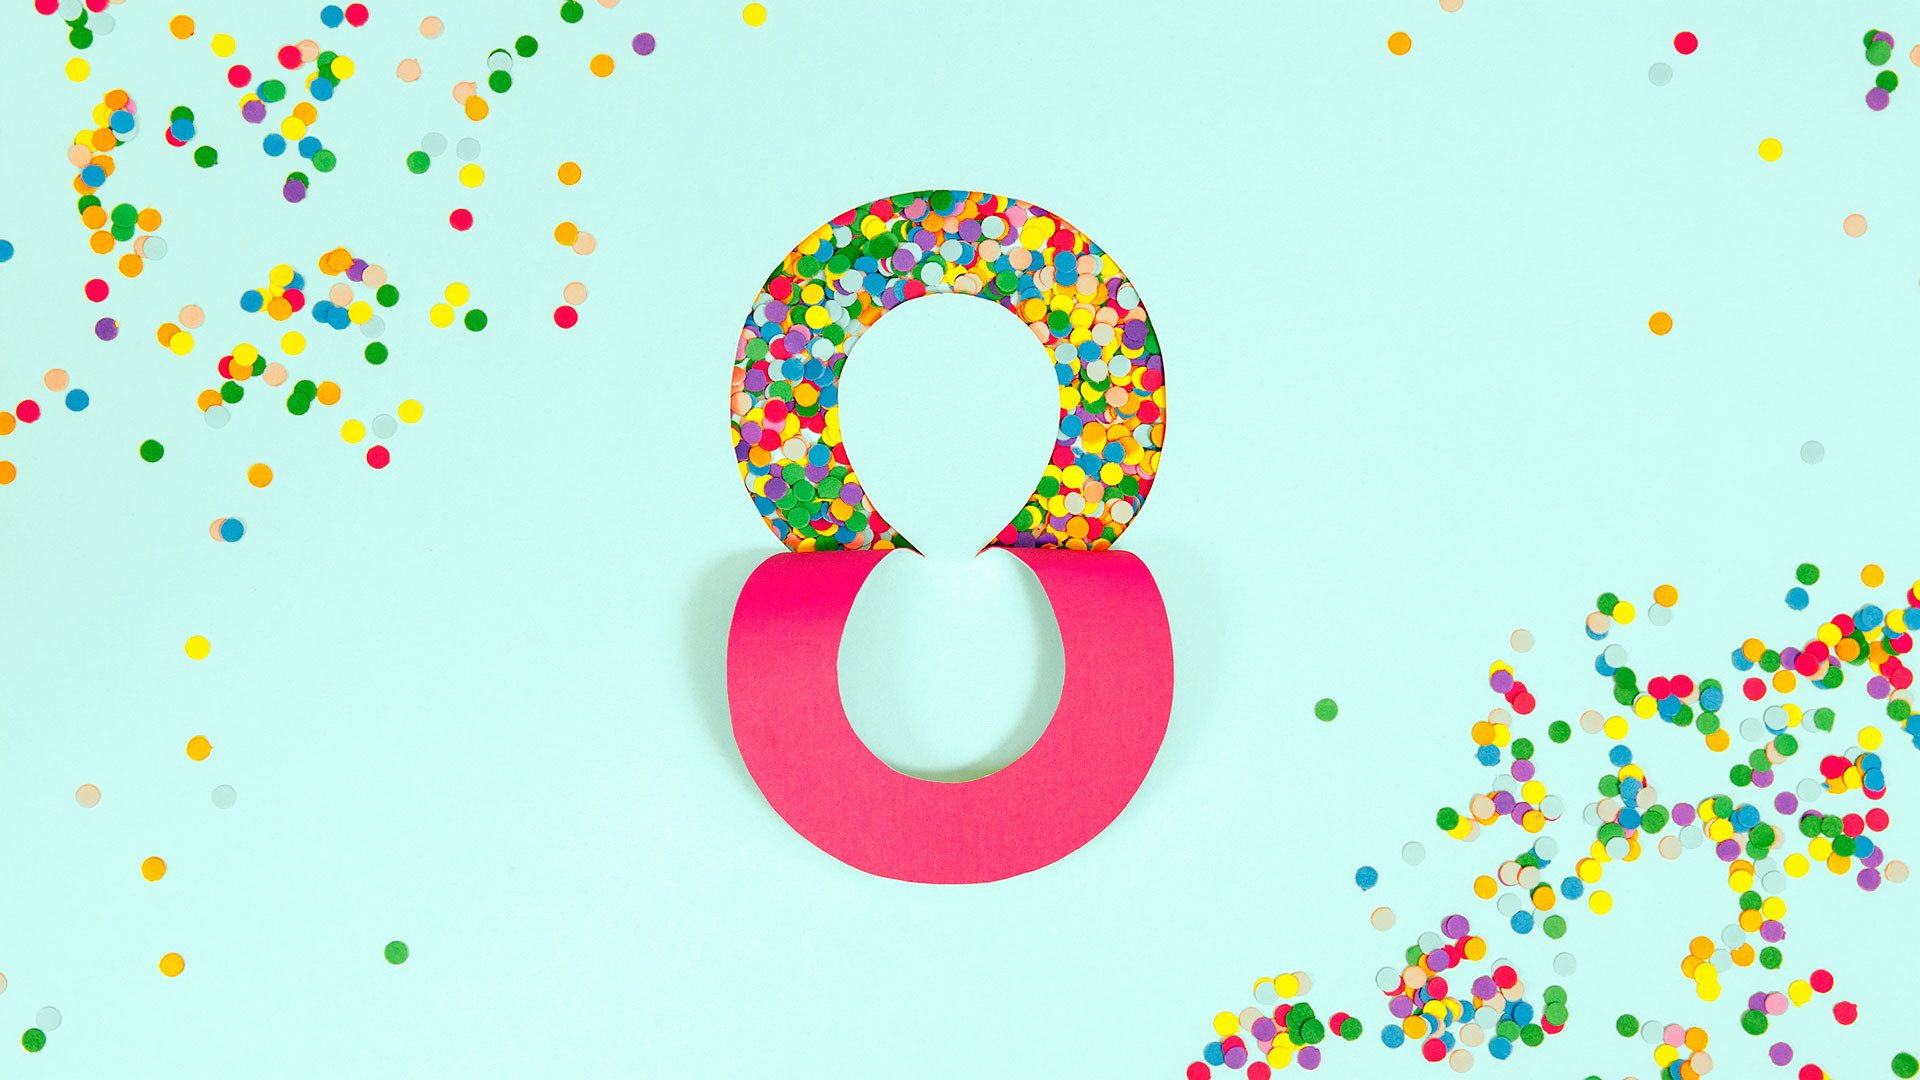 Do you remember when you joined Twitter? I do! #MyTwitterAnniversary https://t.co/G21CXr2yGw